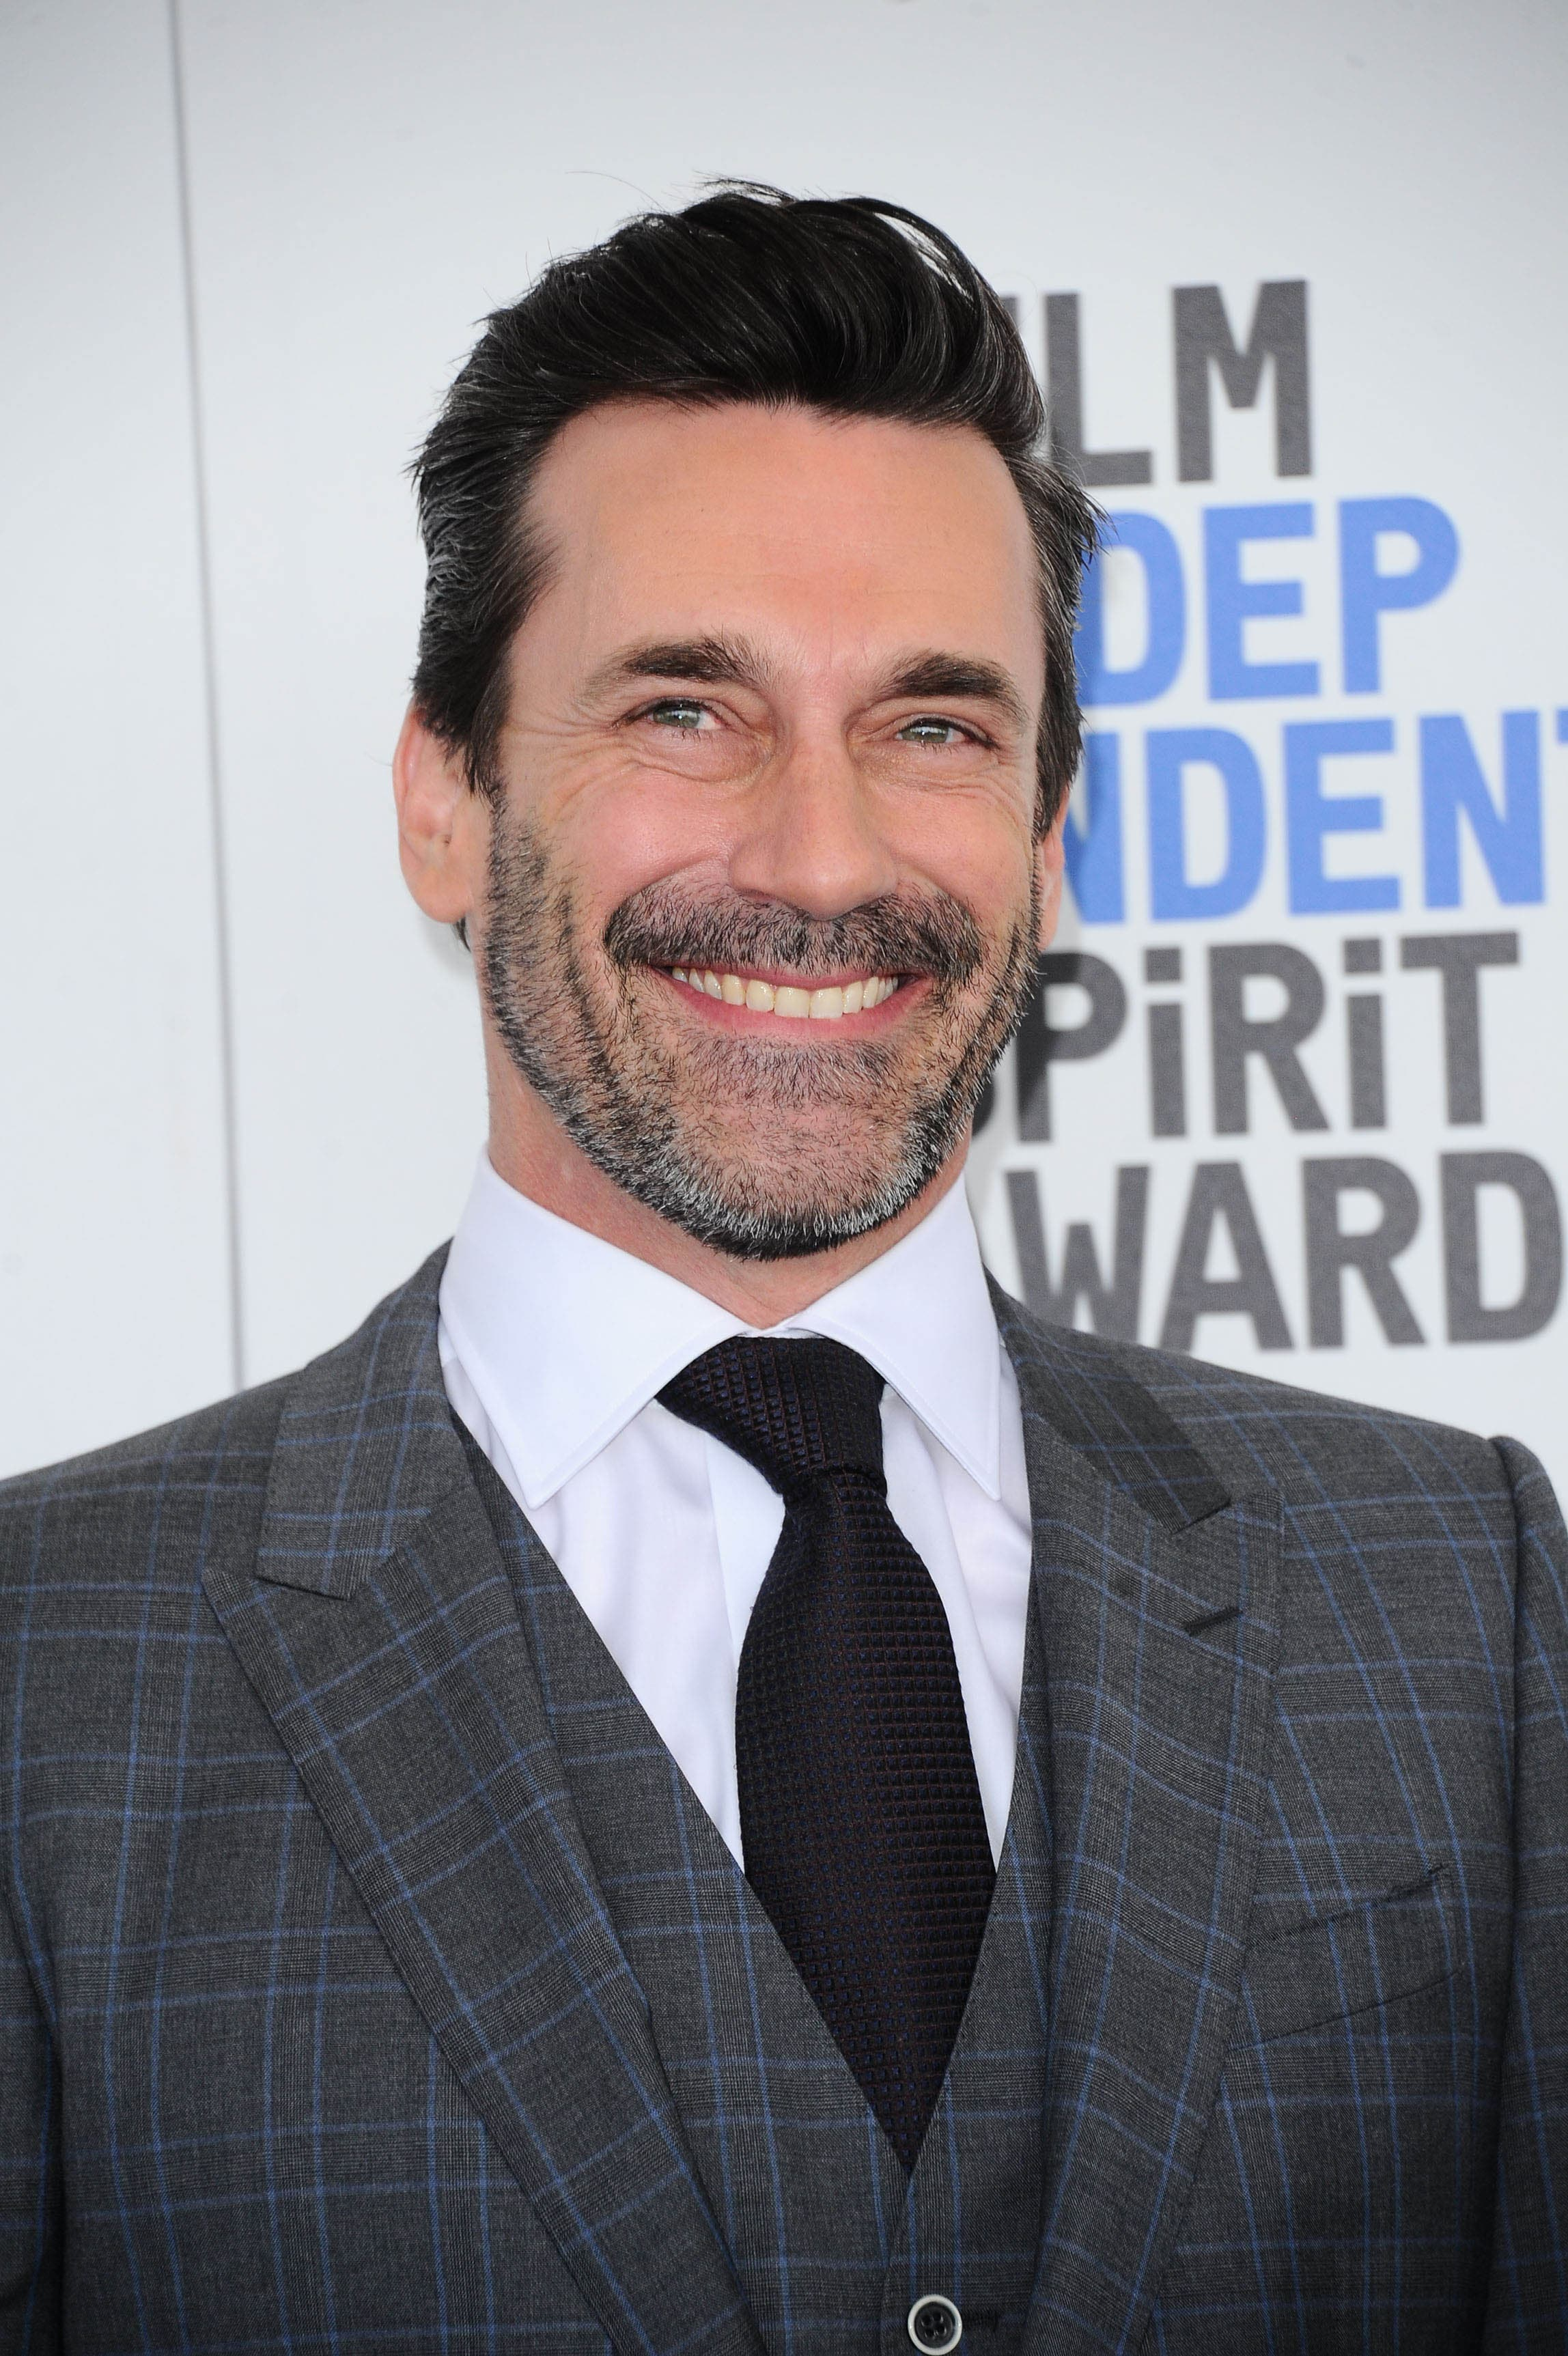 Hairstyles for men over 40: Photo of John Hamm with dark brown swept back hair and stubble